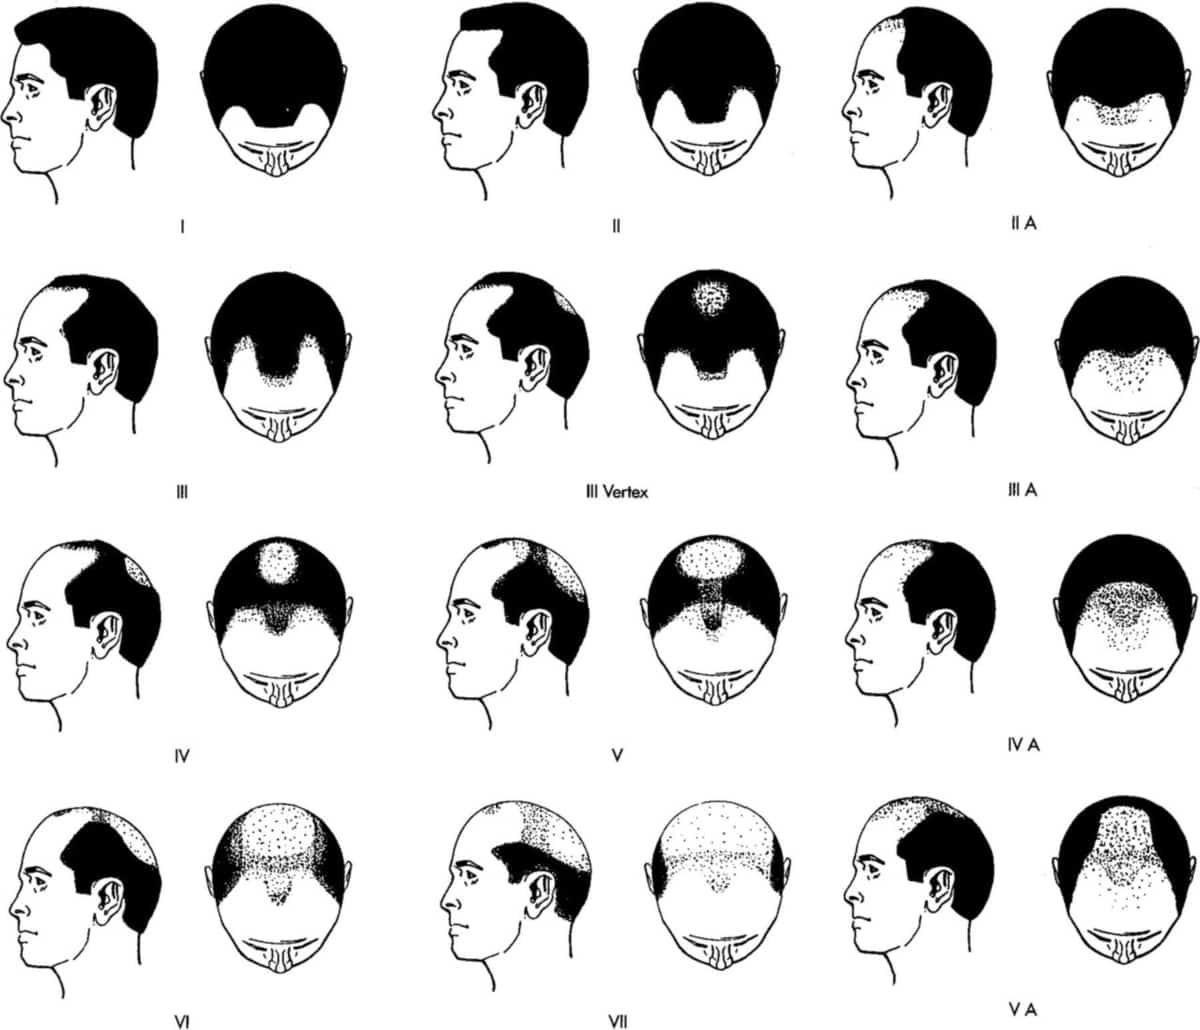 Hair loss Norwood scale for men. Use it to find the stage and severity of your balding.